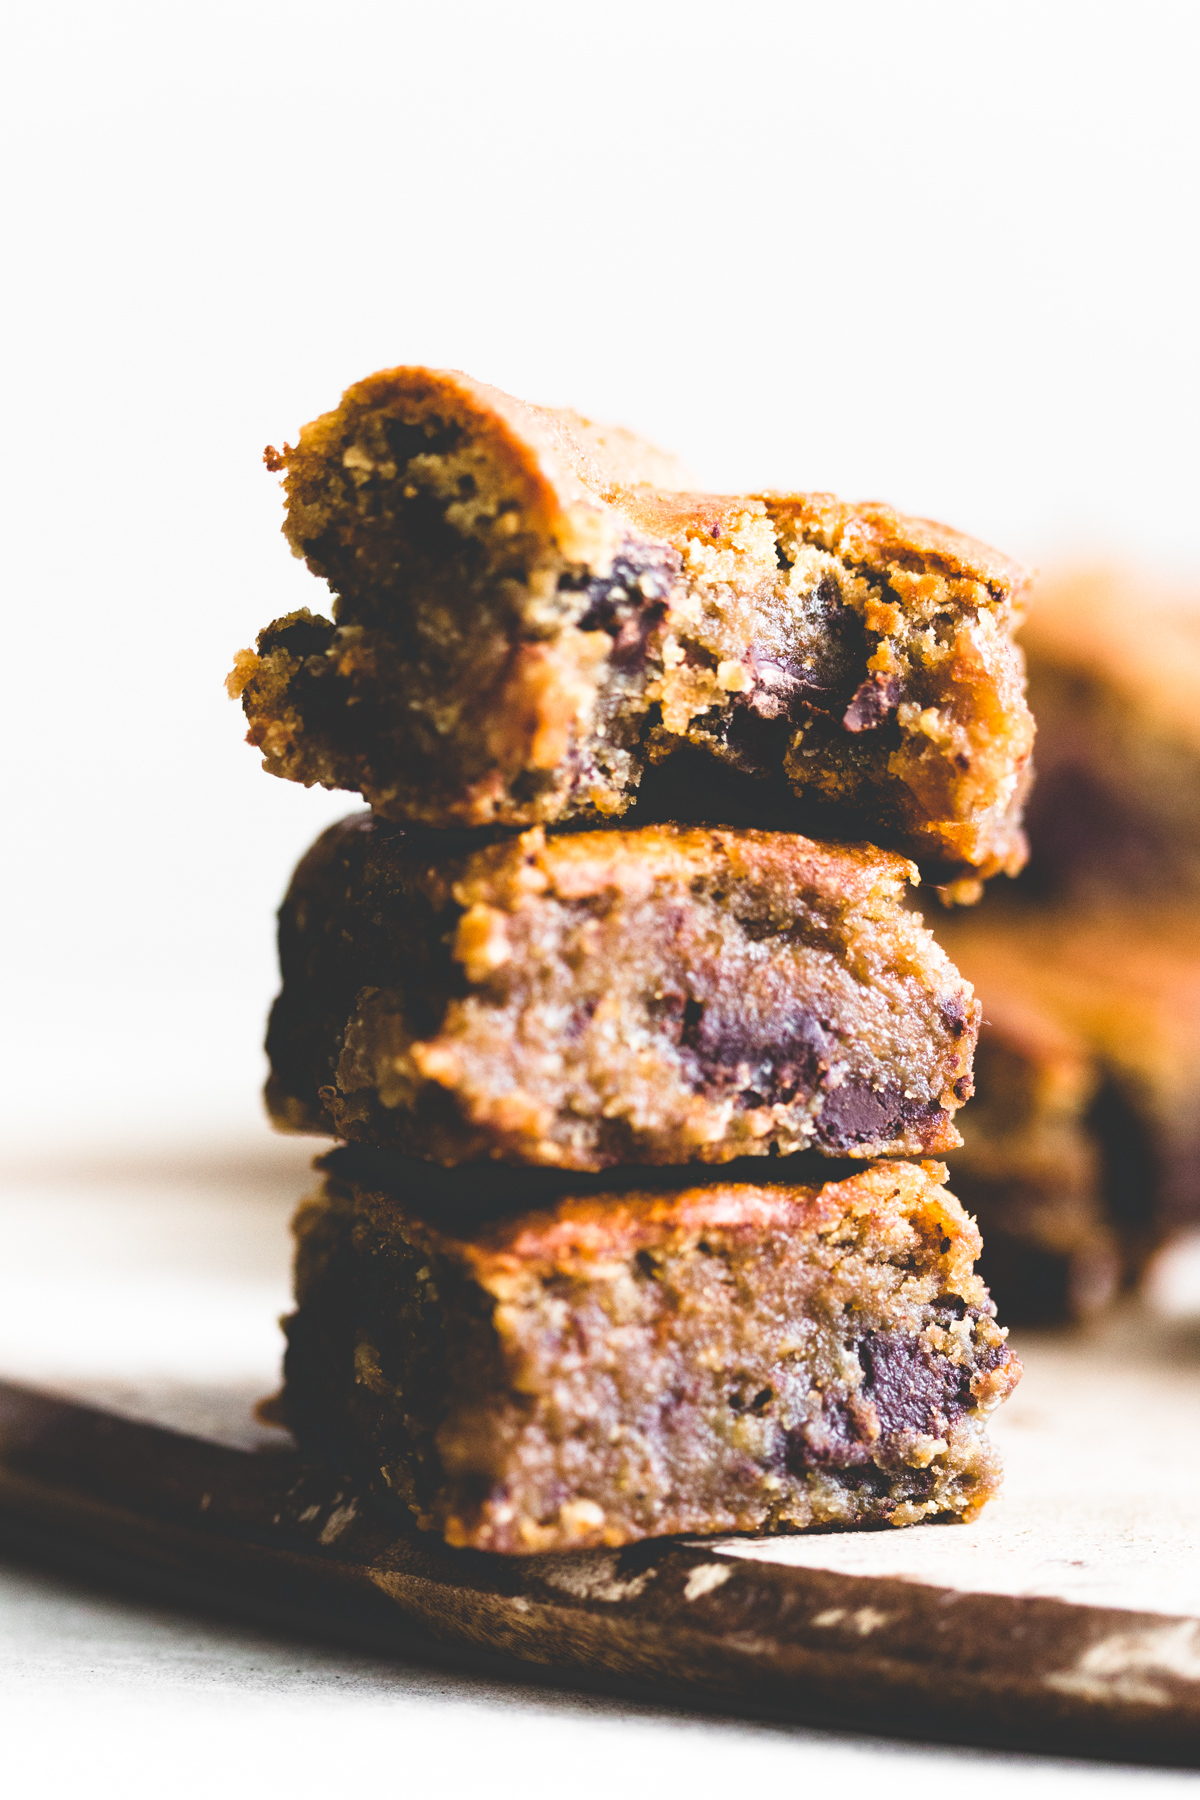 Healthy and delicious chewy Vegan Chickpea Blondies with Chocolate Chunks. You won't even know that they're made with Garbanzo Beans! #chickpea #blondies #vegan #healthy #chickpeablondies #brownies #veganbaking #healthyvegan #chocolatechipcookie #chocolate #cookiebars #refinedsugarfree #glutenfree #baking